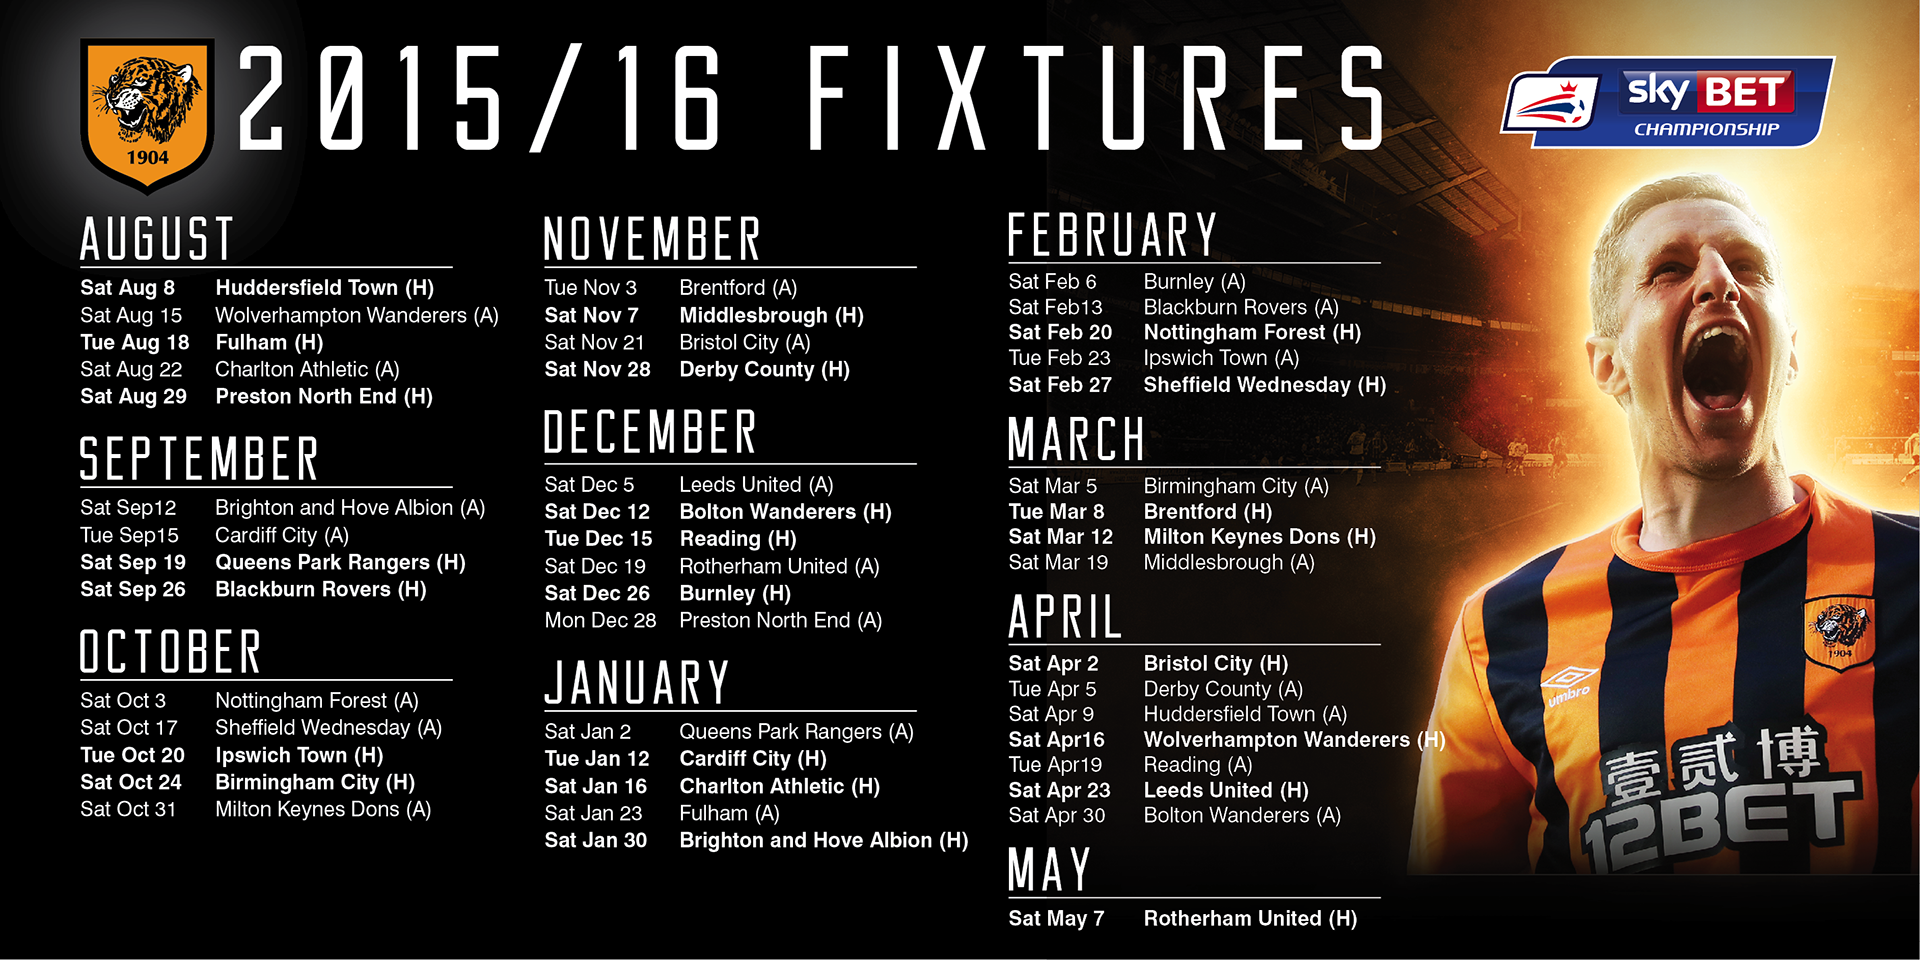 hull city tigers fixtures